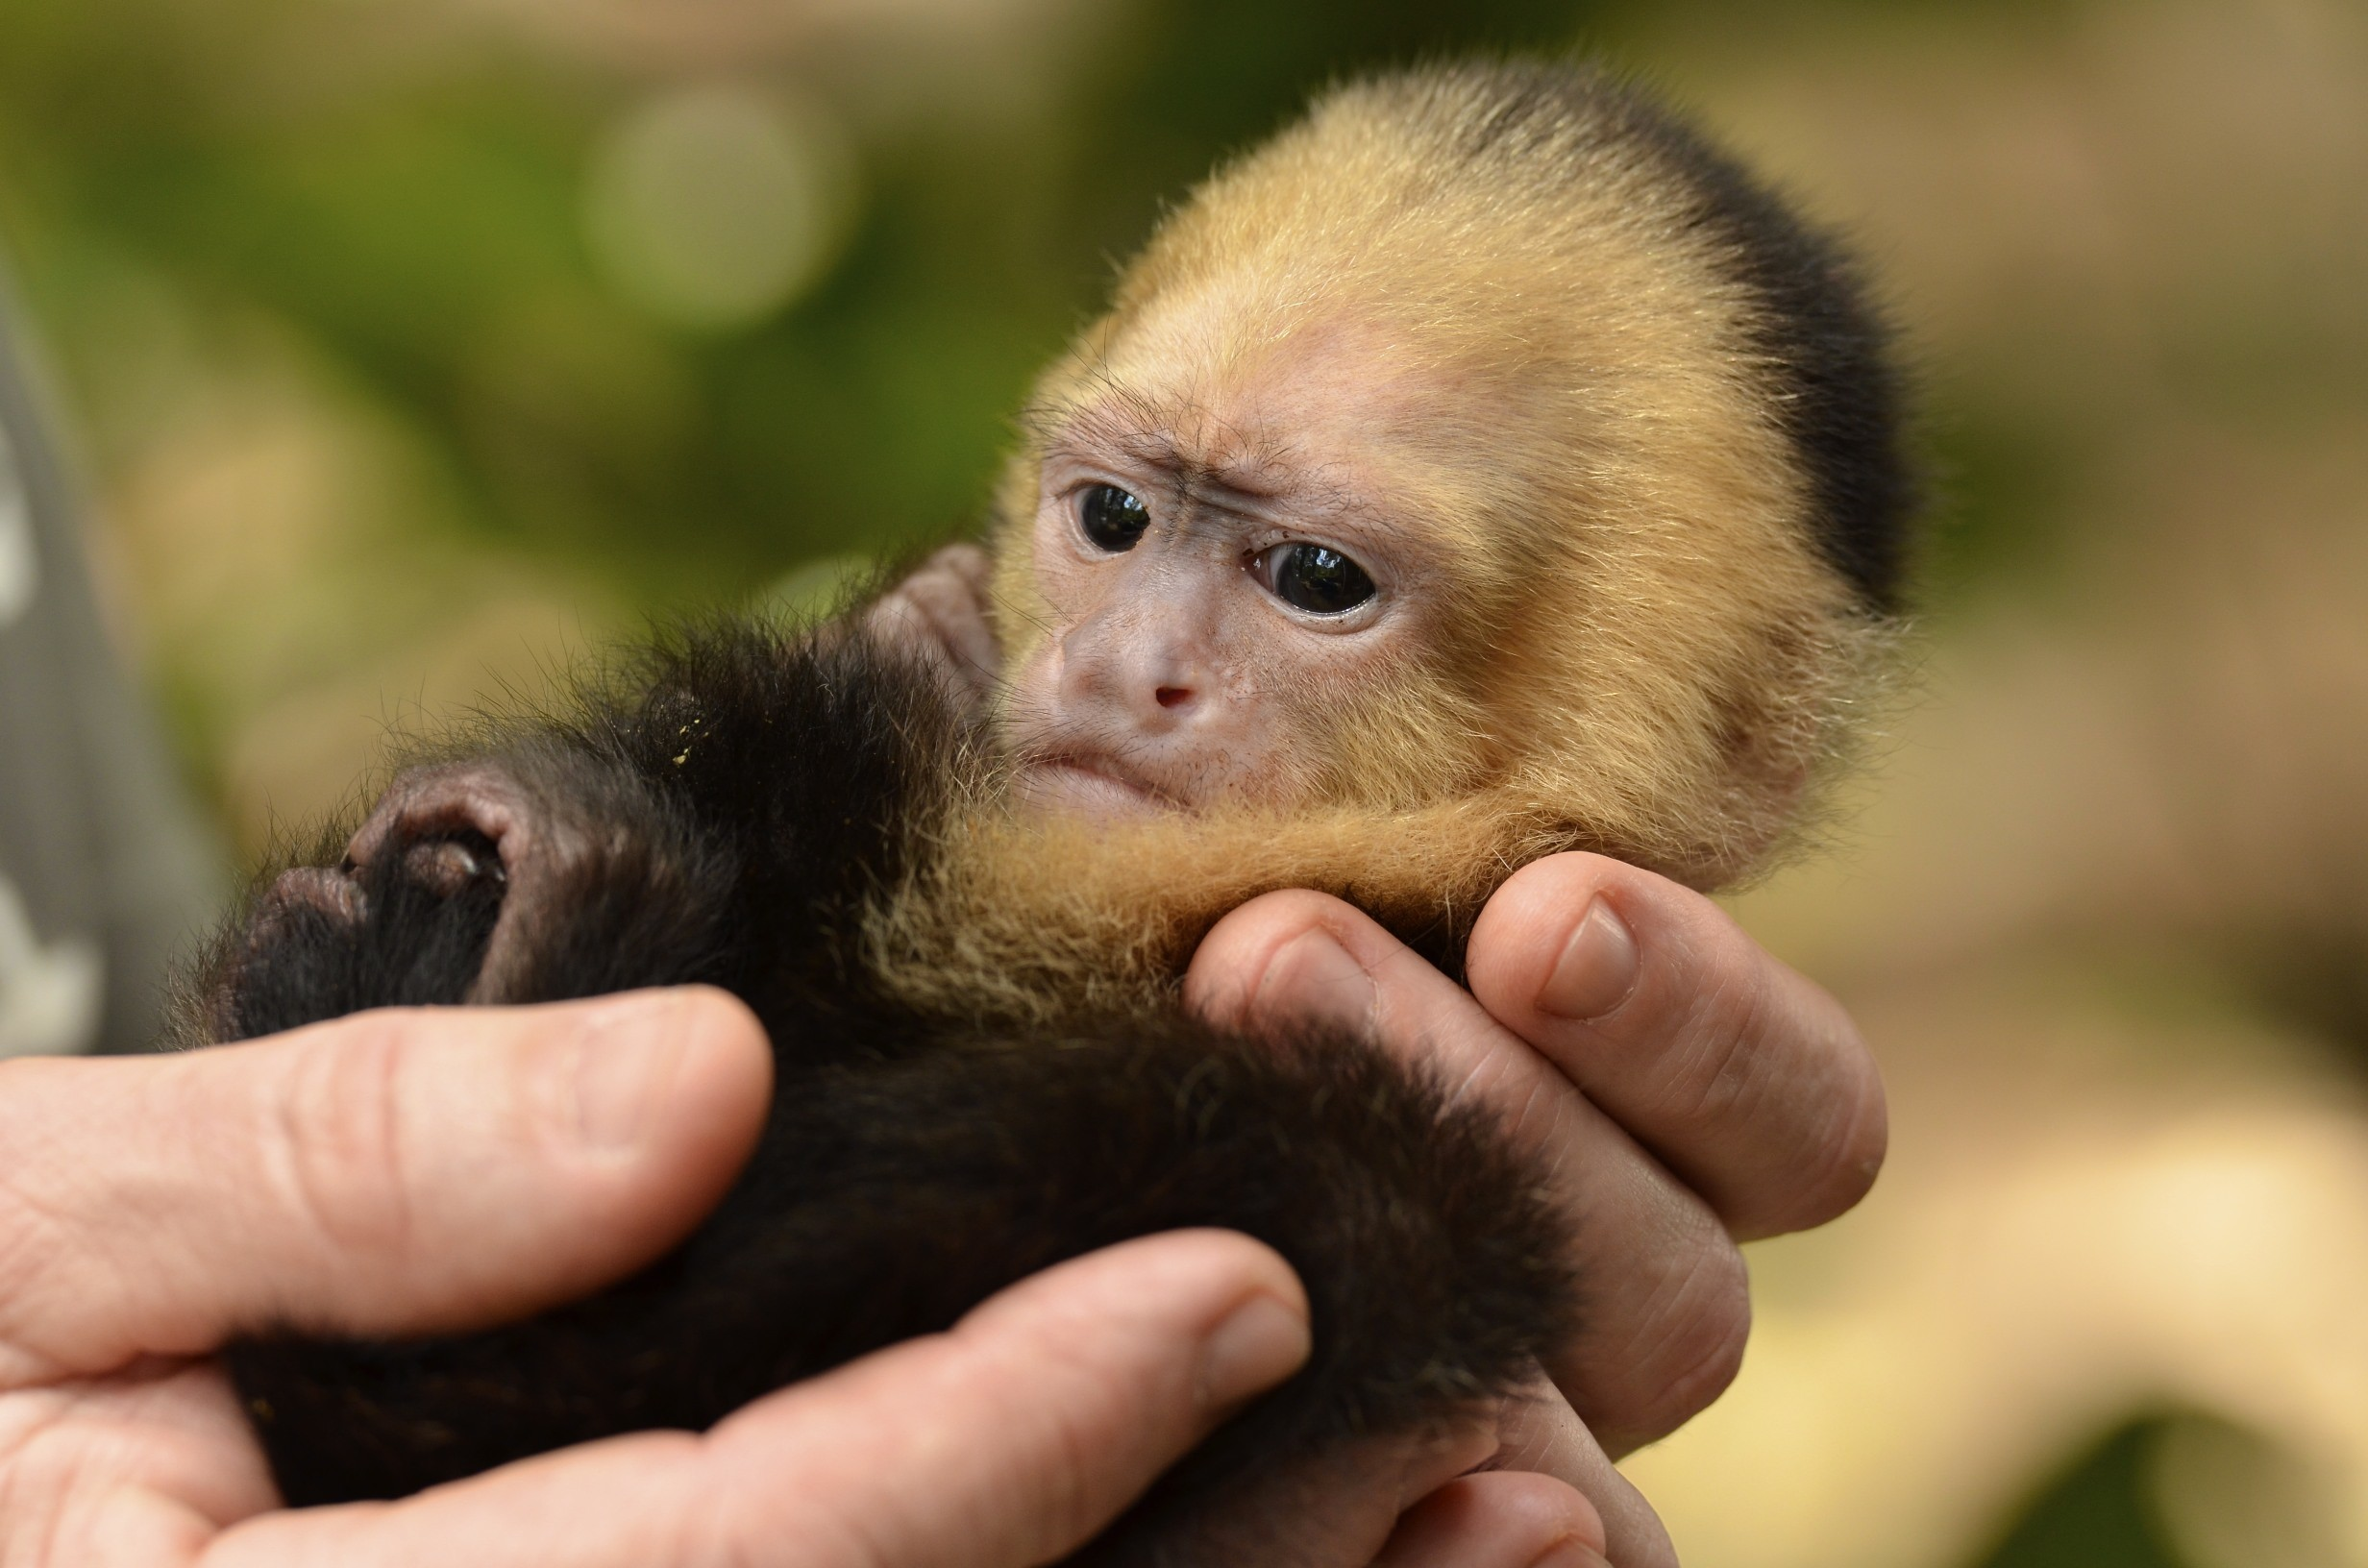 Res: 2464x1632, Michael Kummer Have you ever wanted a Pet Monkey